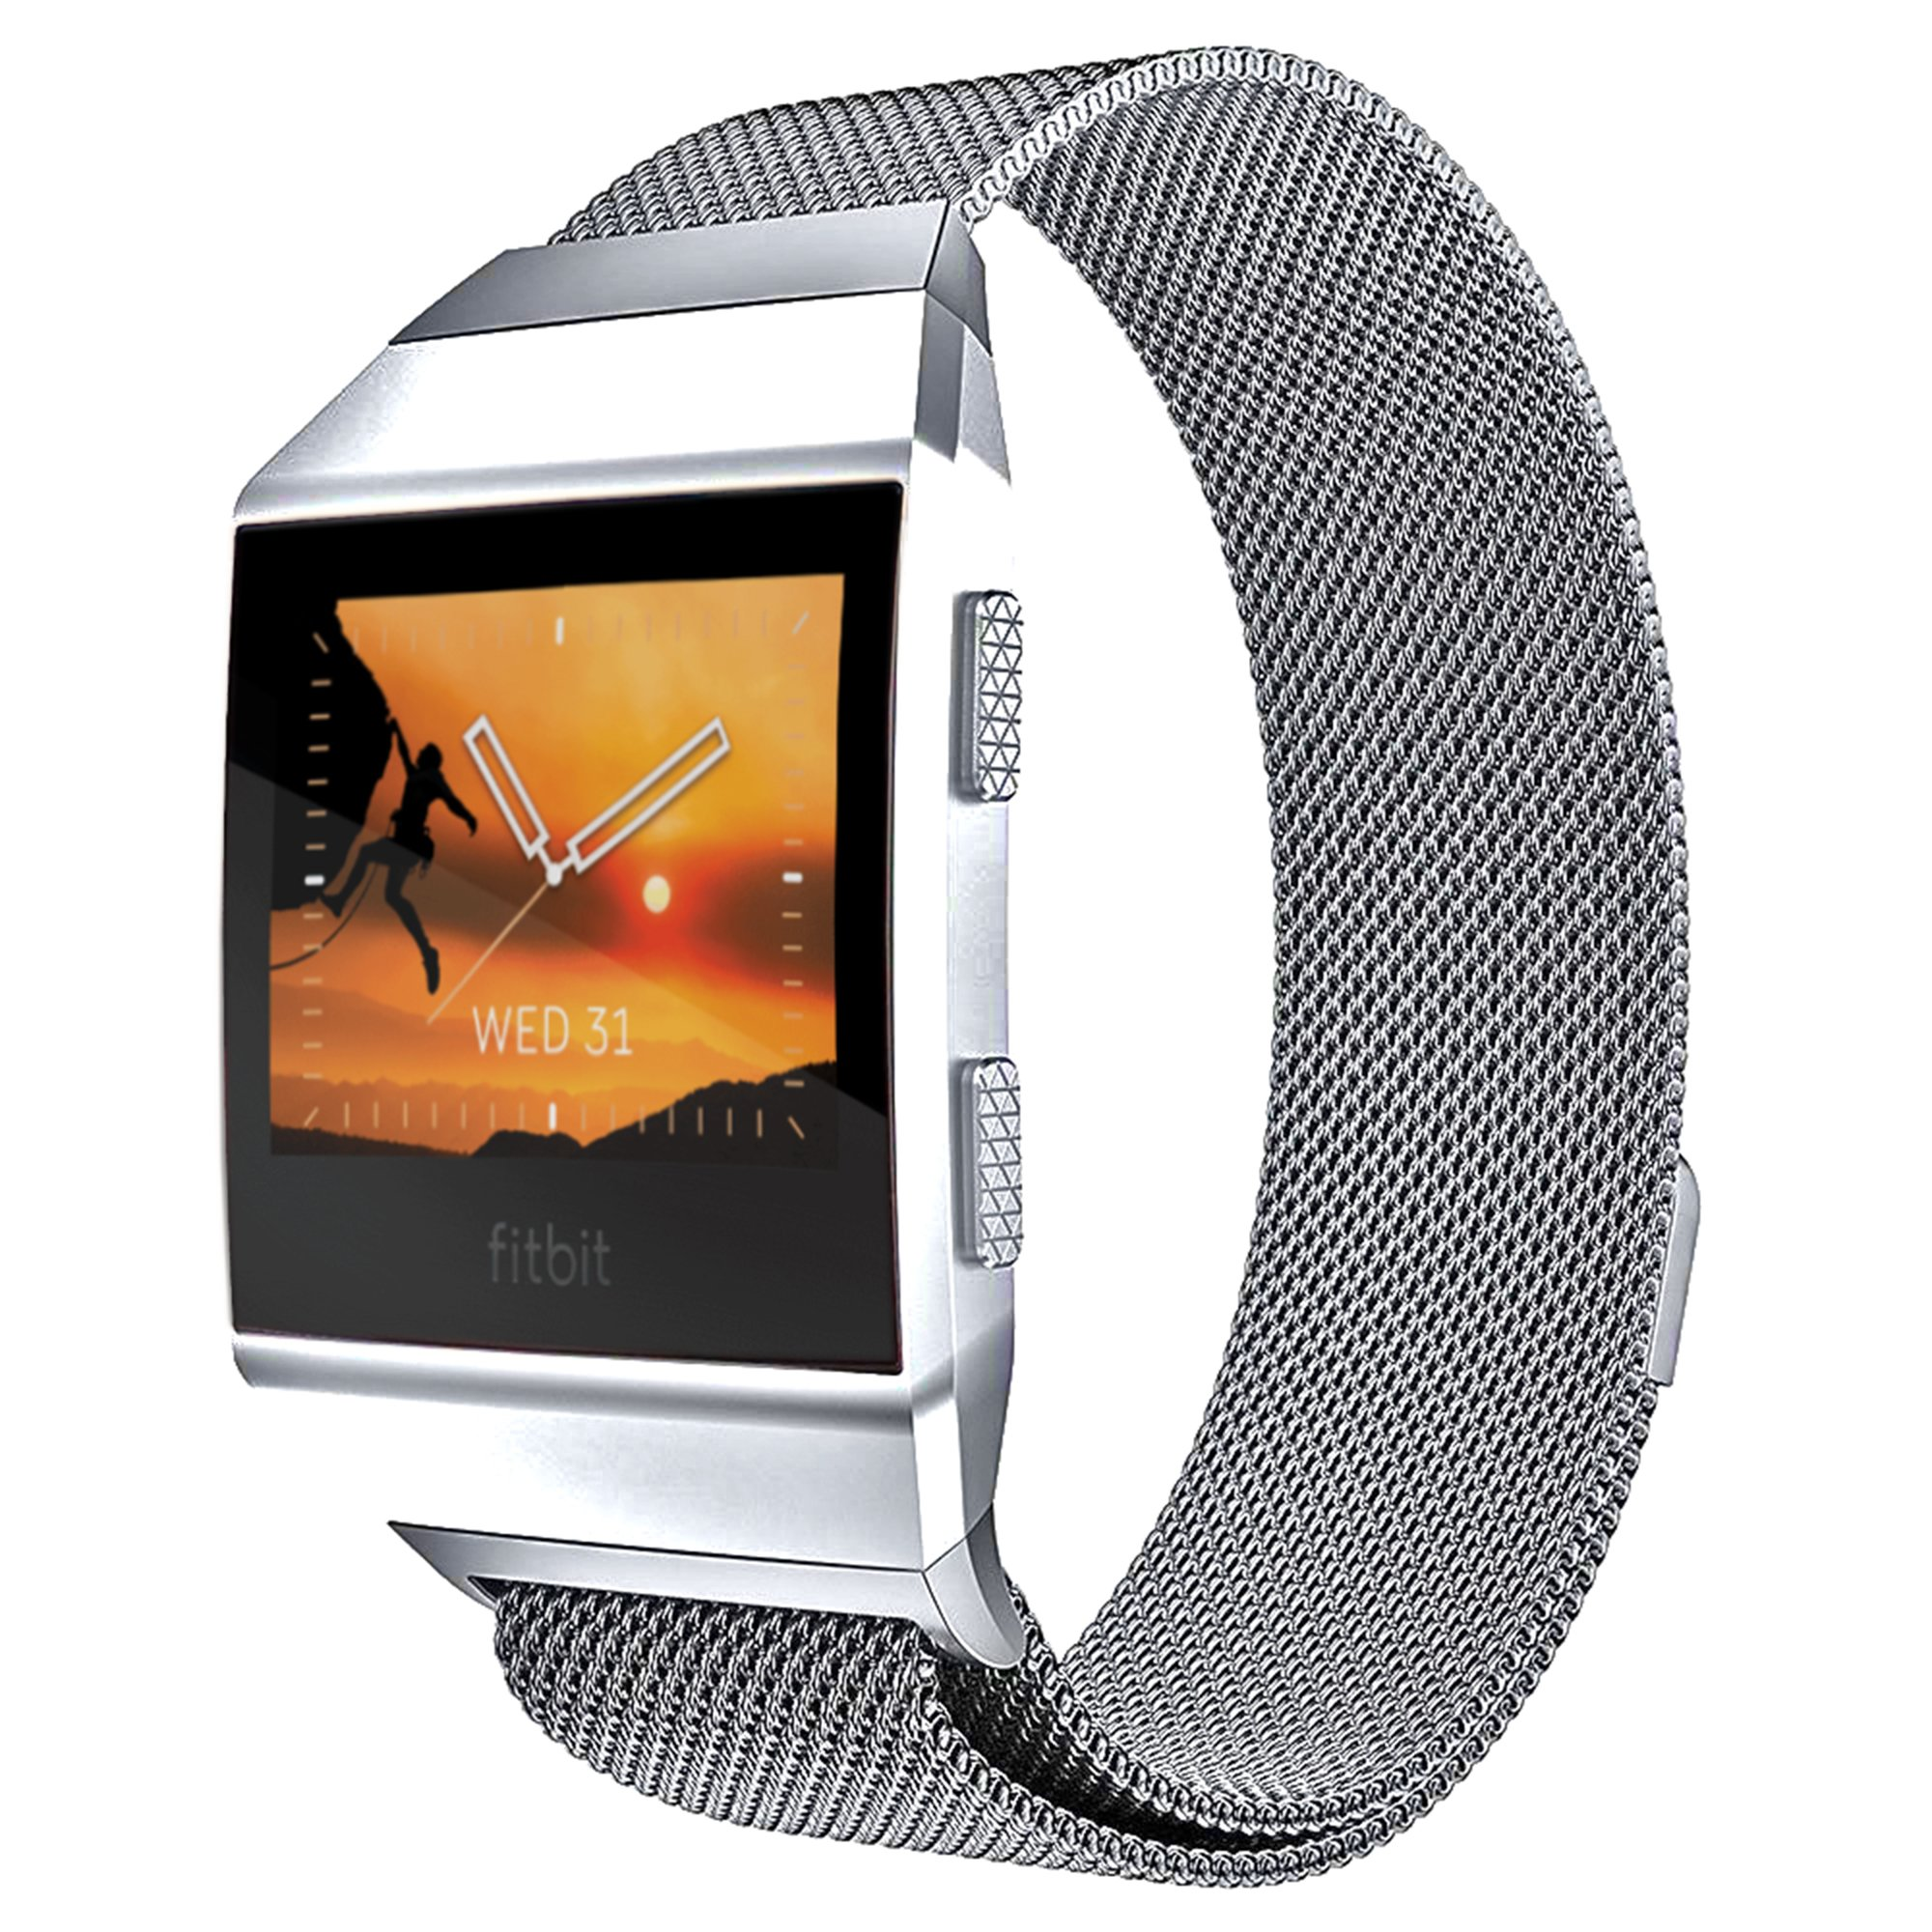 For Fitbit Ionic Milanese Band Small, Bandmax Milanese Stainless Steel Watch Band Mesh Metal Replacement Sport Strap with Magnetic Lock Milanese Loop for Fitbit Ionic Smartwatch Silver